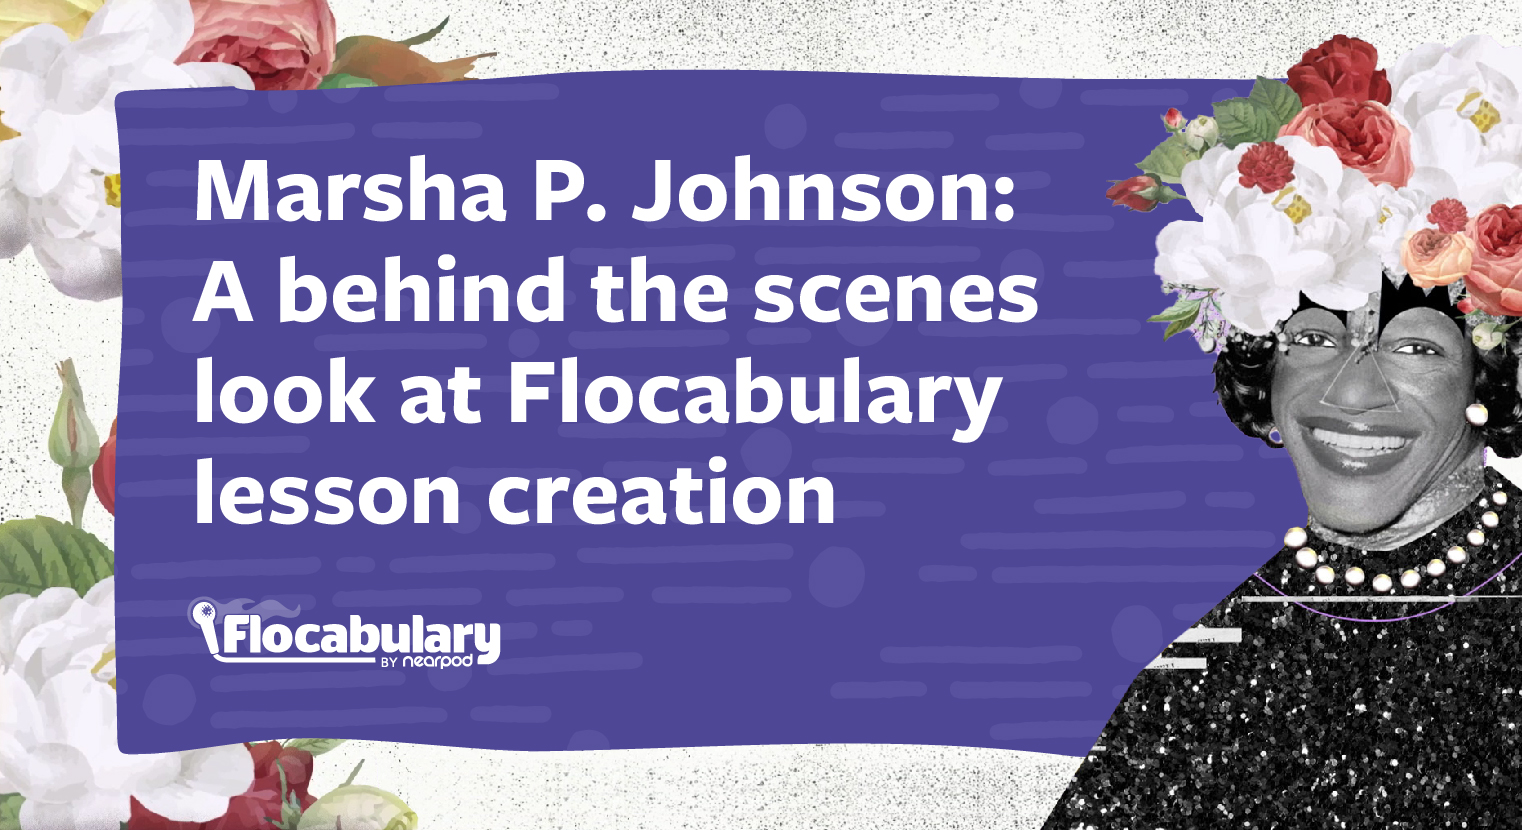 Marsha P. Johnson: A Behind The Scenes Look At Flocabulary Lesson Creation